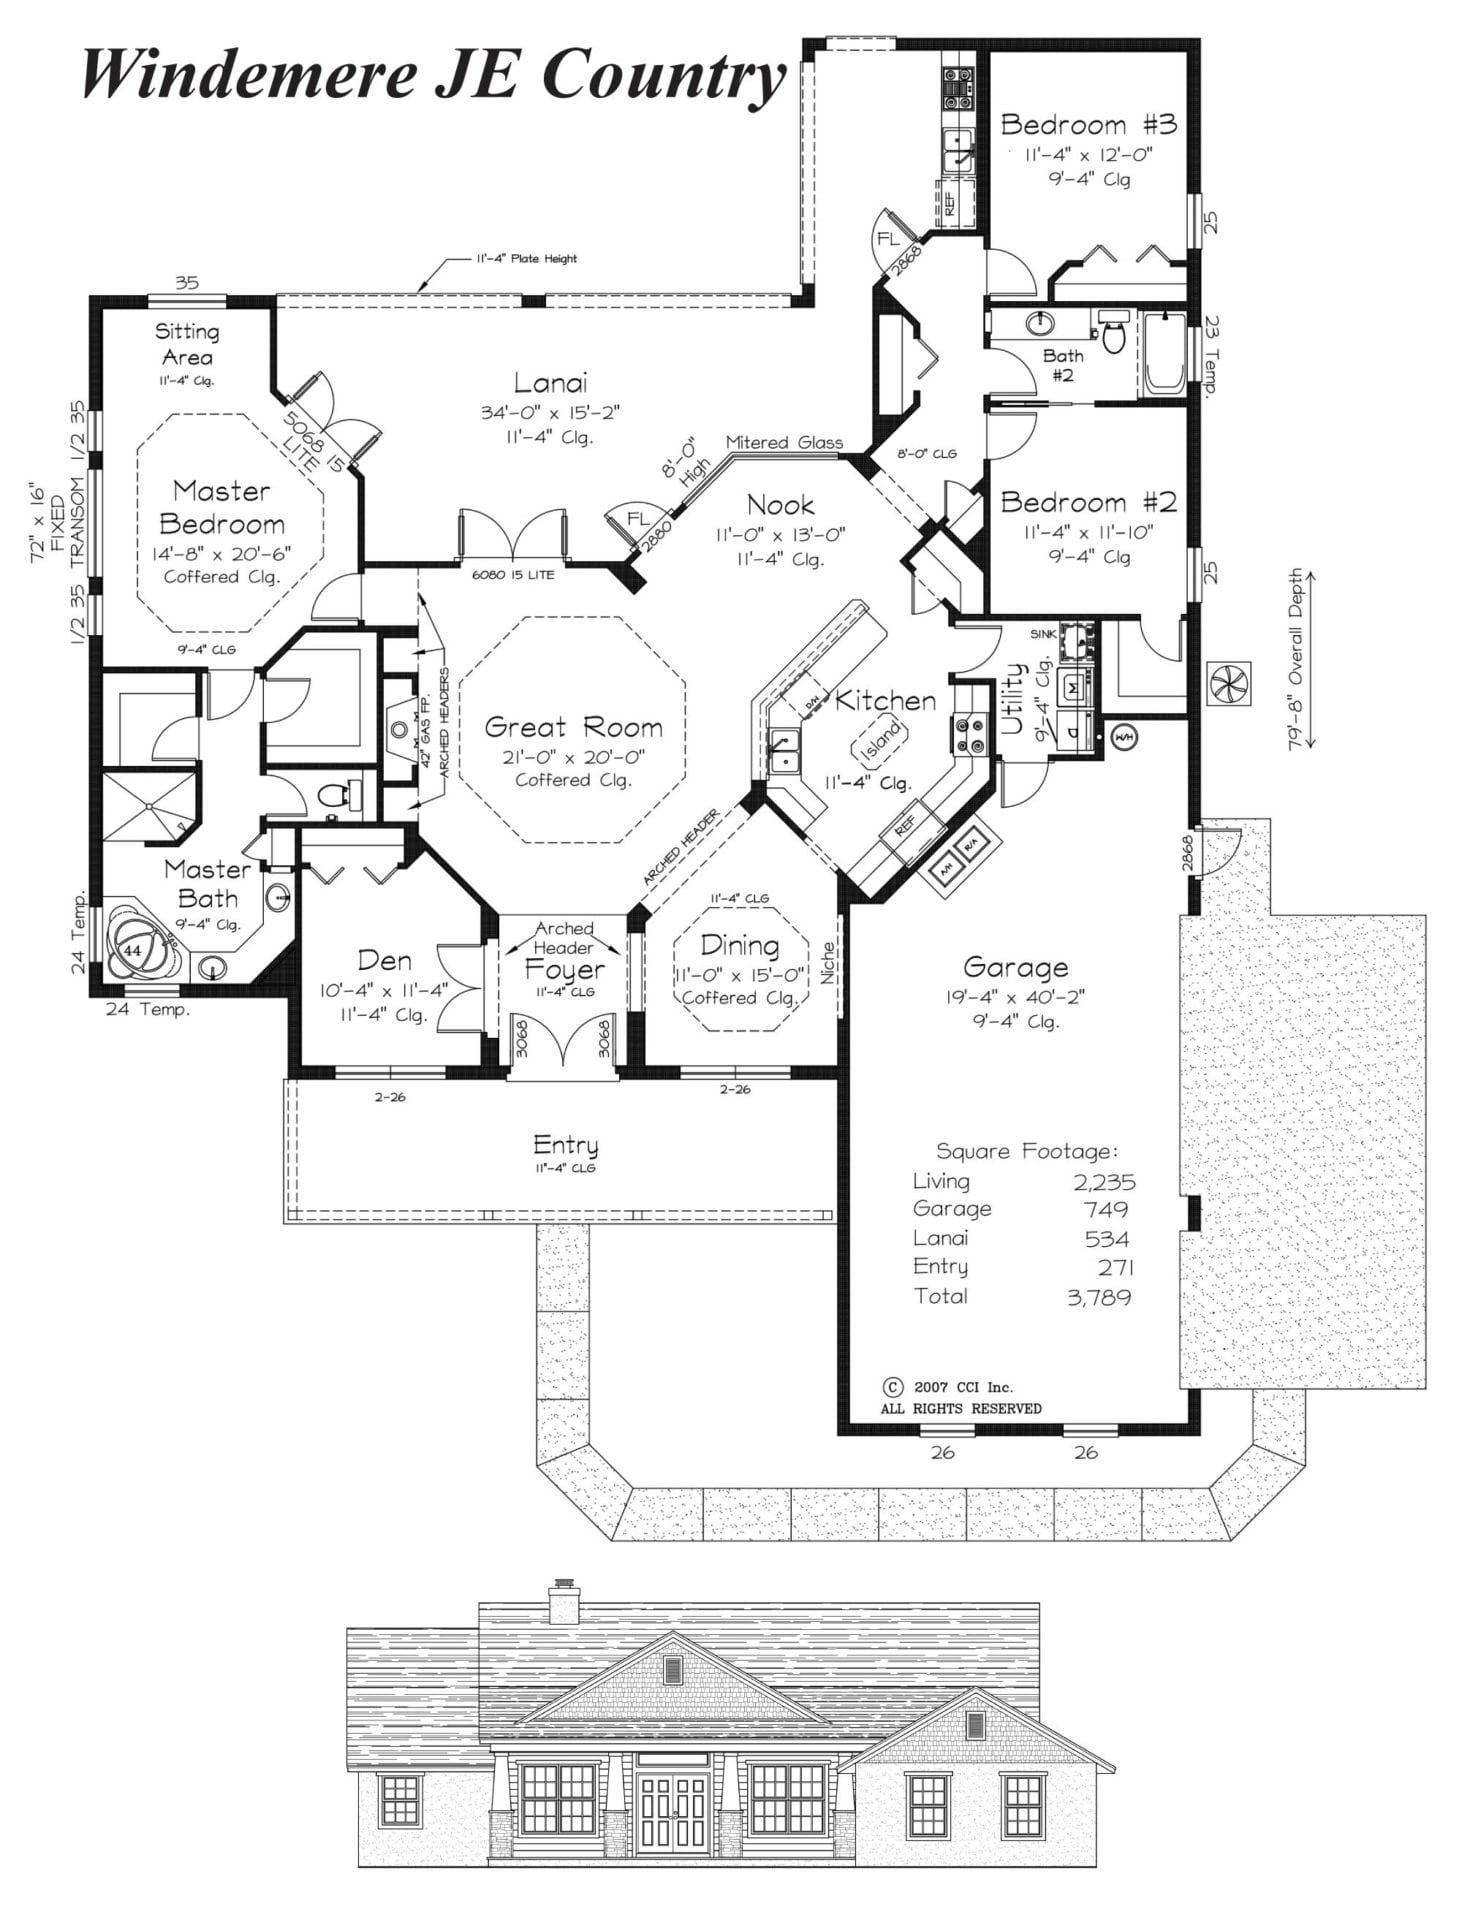 Windemere JE Country - Floor Plan - Curington Homes - Contractor Building in Ocala Florida